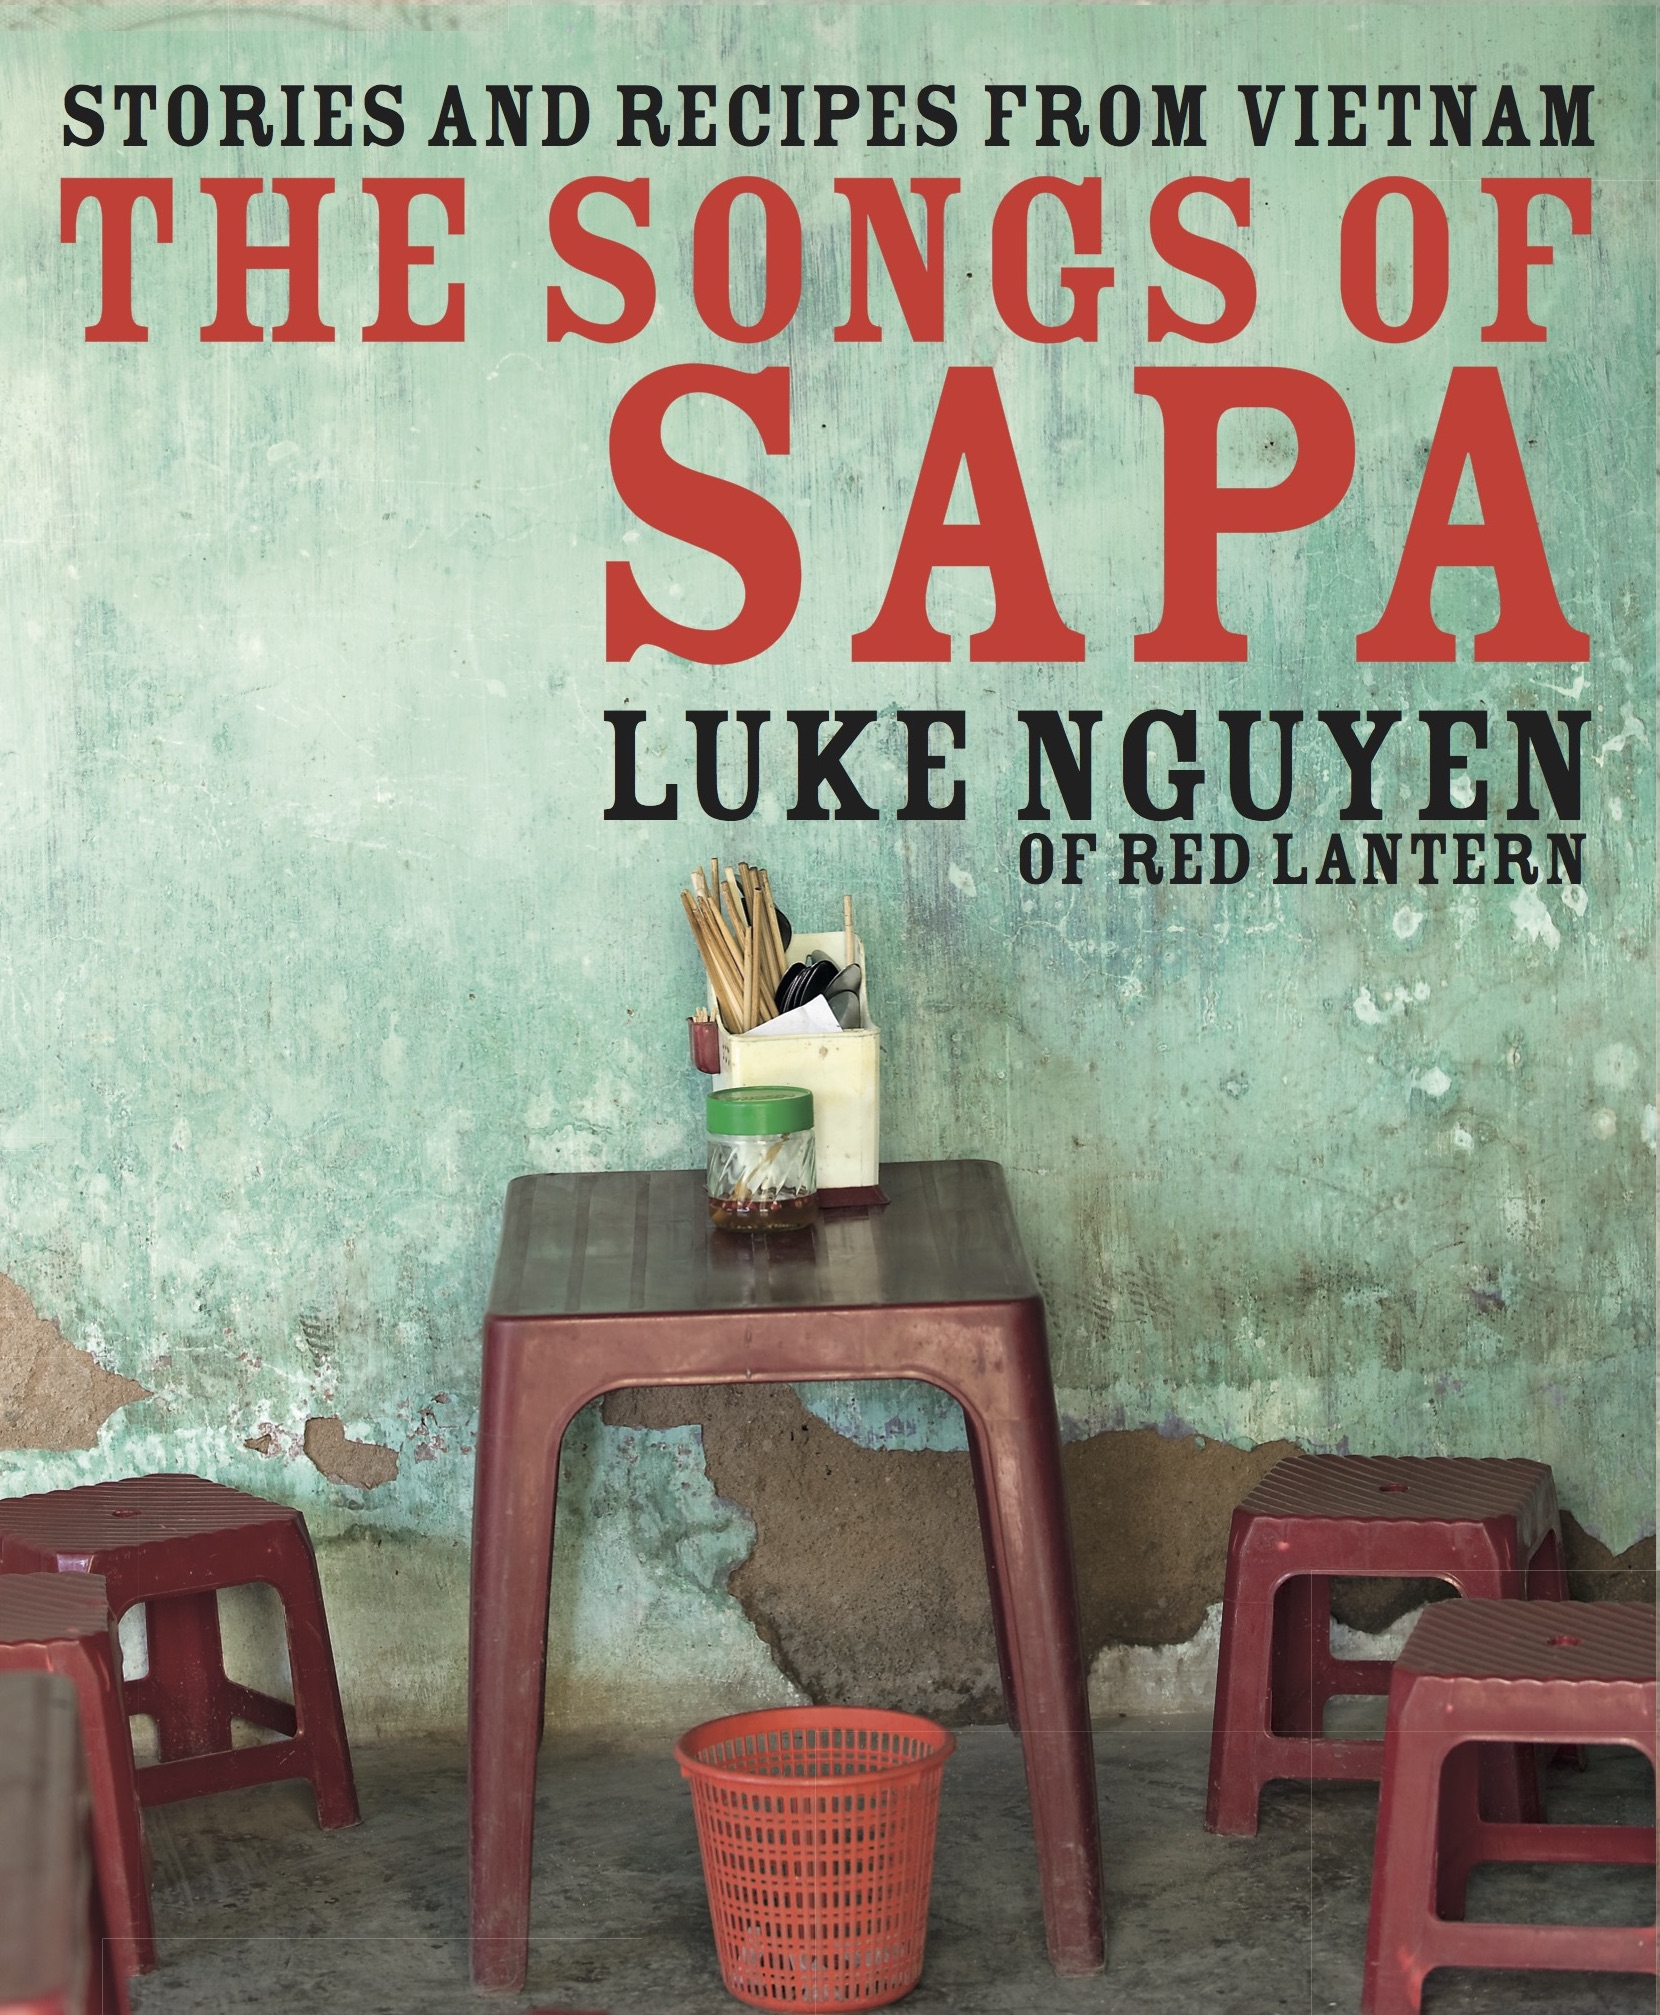 The Songs of Sapa by Luke Nguyen (of Red Lantern)